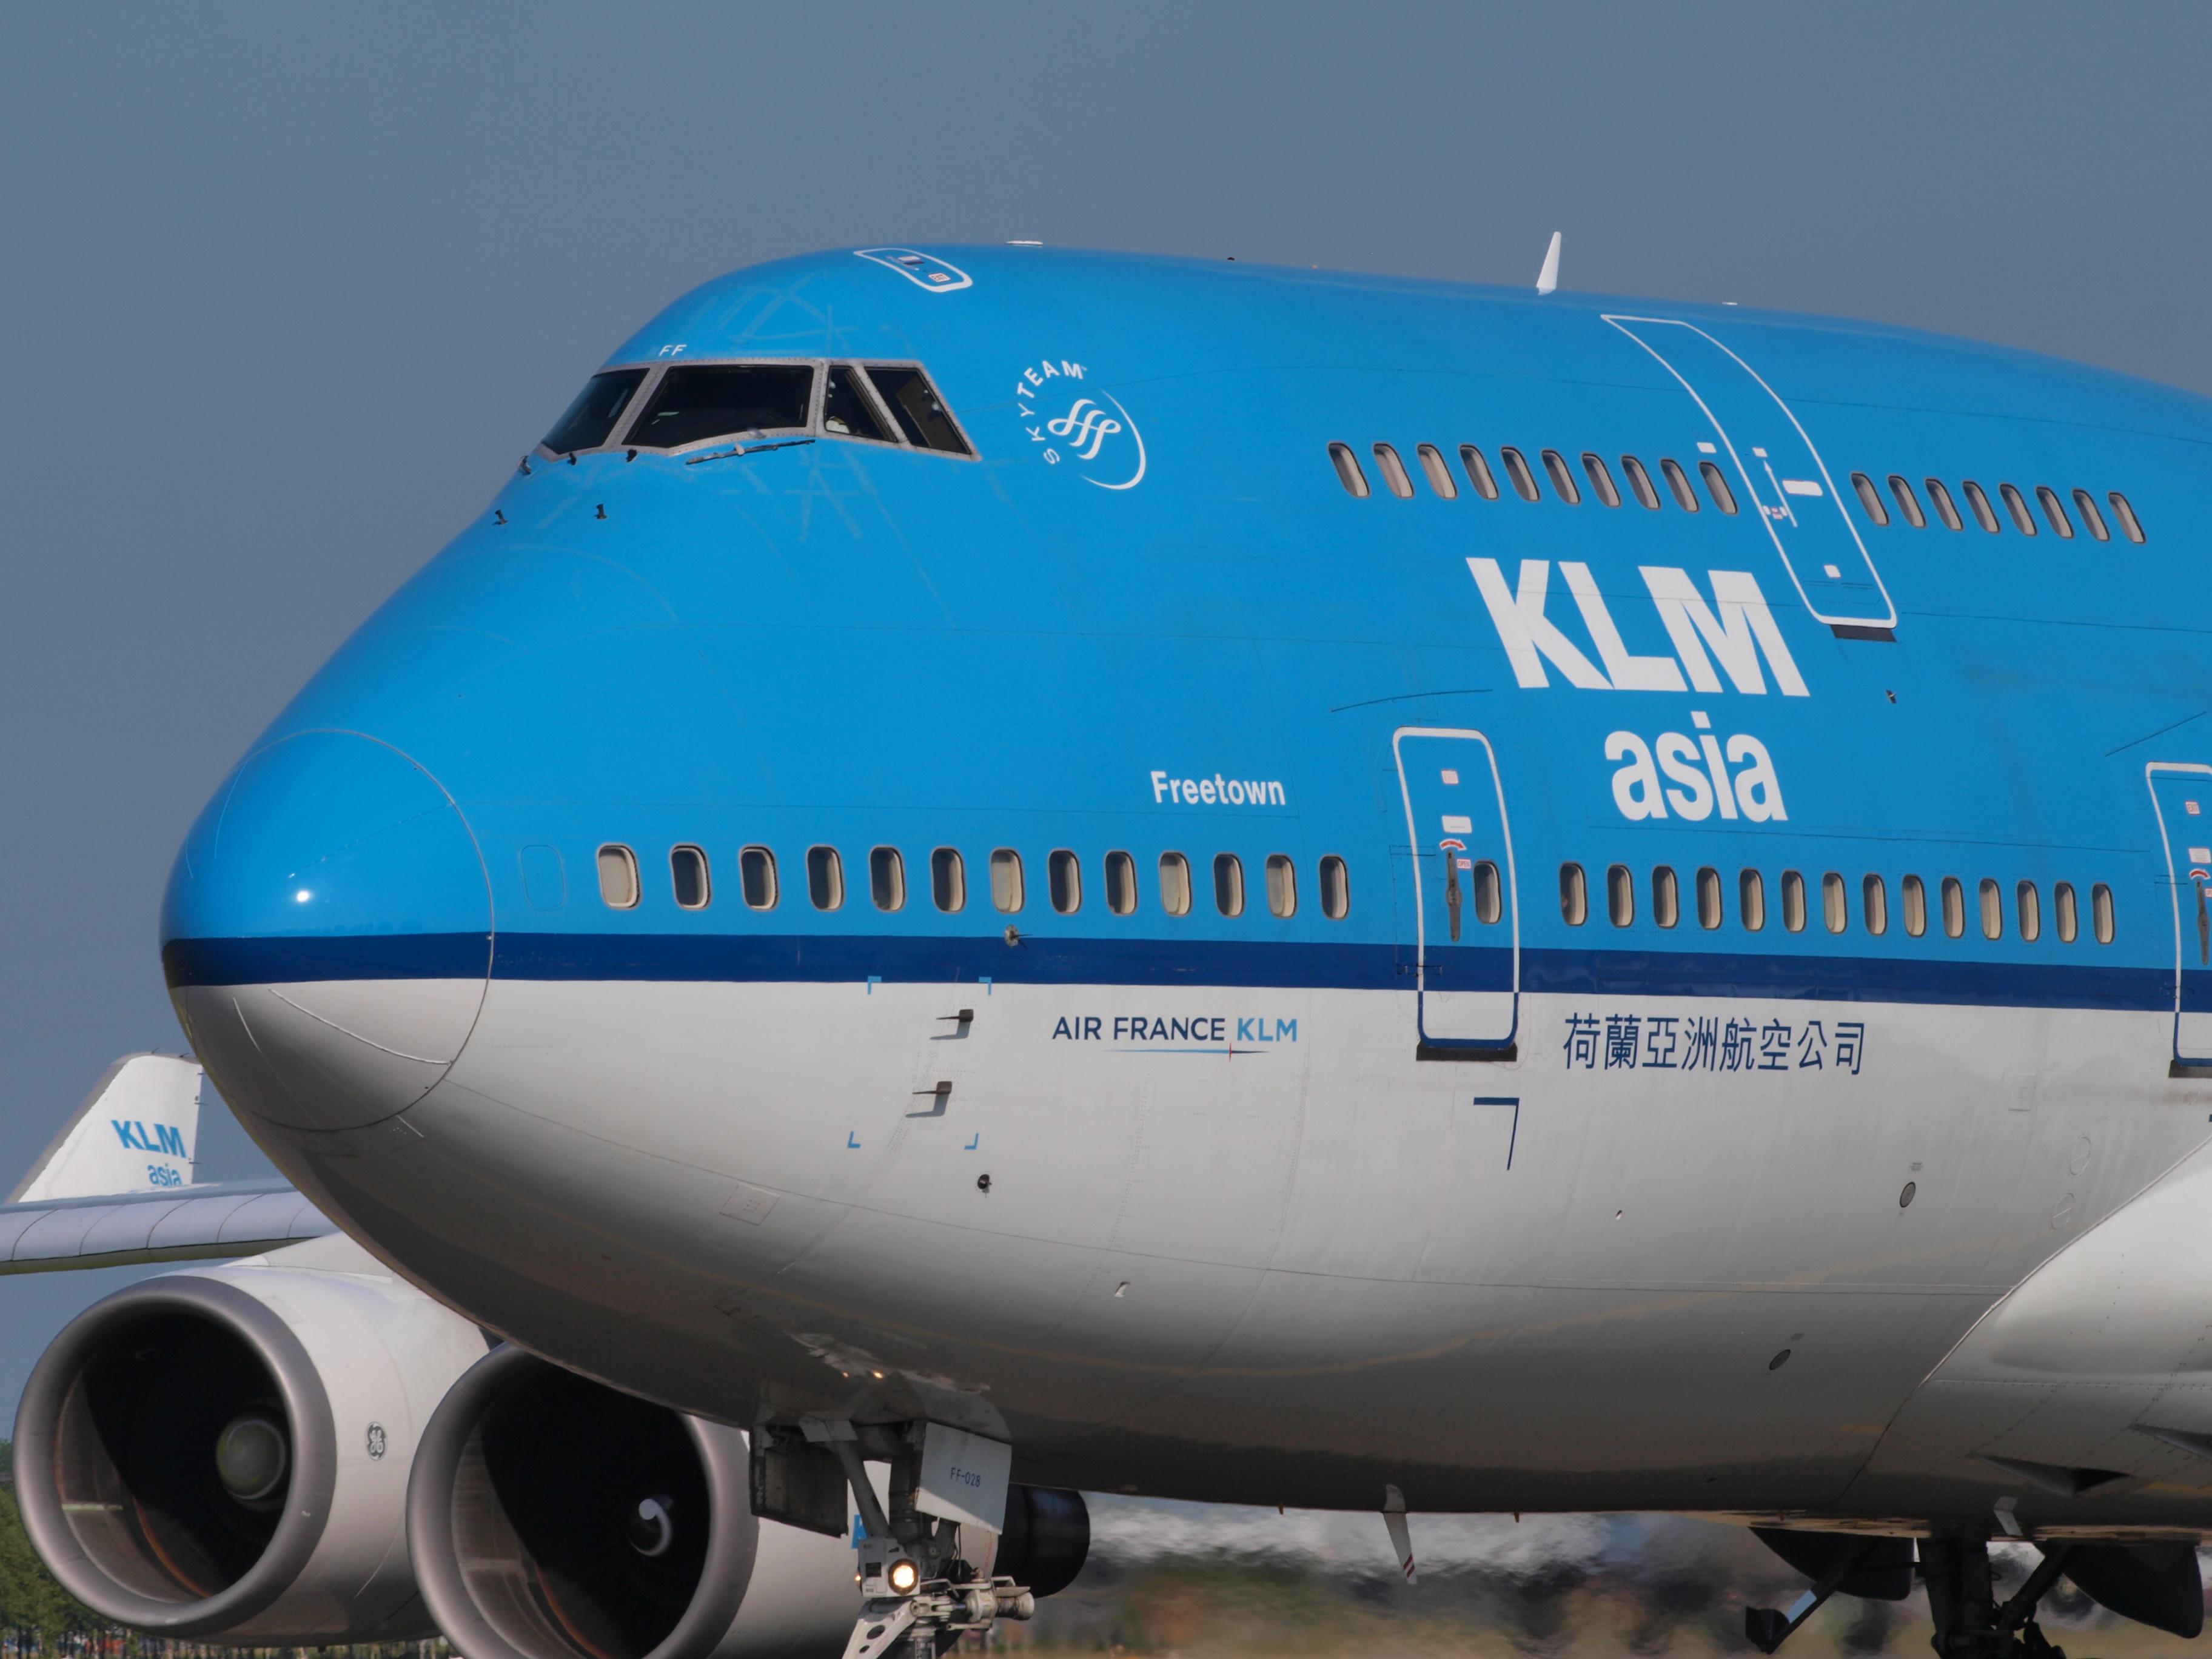 Description PH-BFF KLM Royal Dutch Airlines Boeing 747-406(M) - cn ...: https://commons.wikimedia.org/wiki/File:PH-BFF_KLM_Royal_Dutch_Airlines_Boeing_747-406(M)_-_cn_24202_taxiing_18july2013_pic-003.JPG